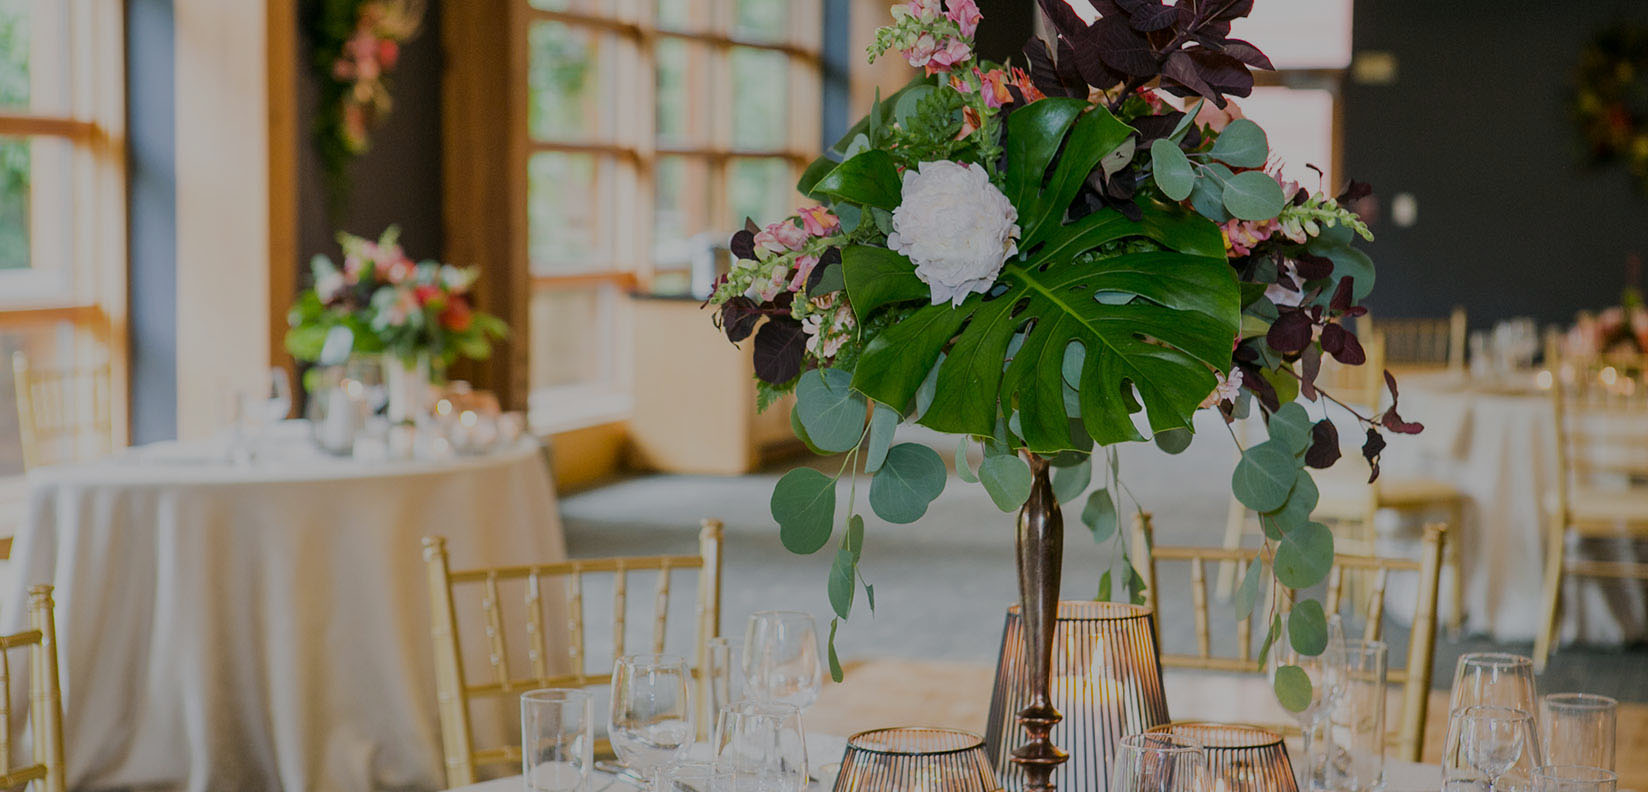 table with floral arrangement